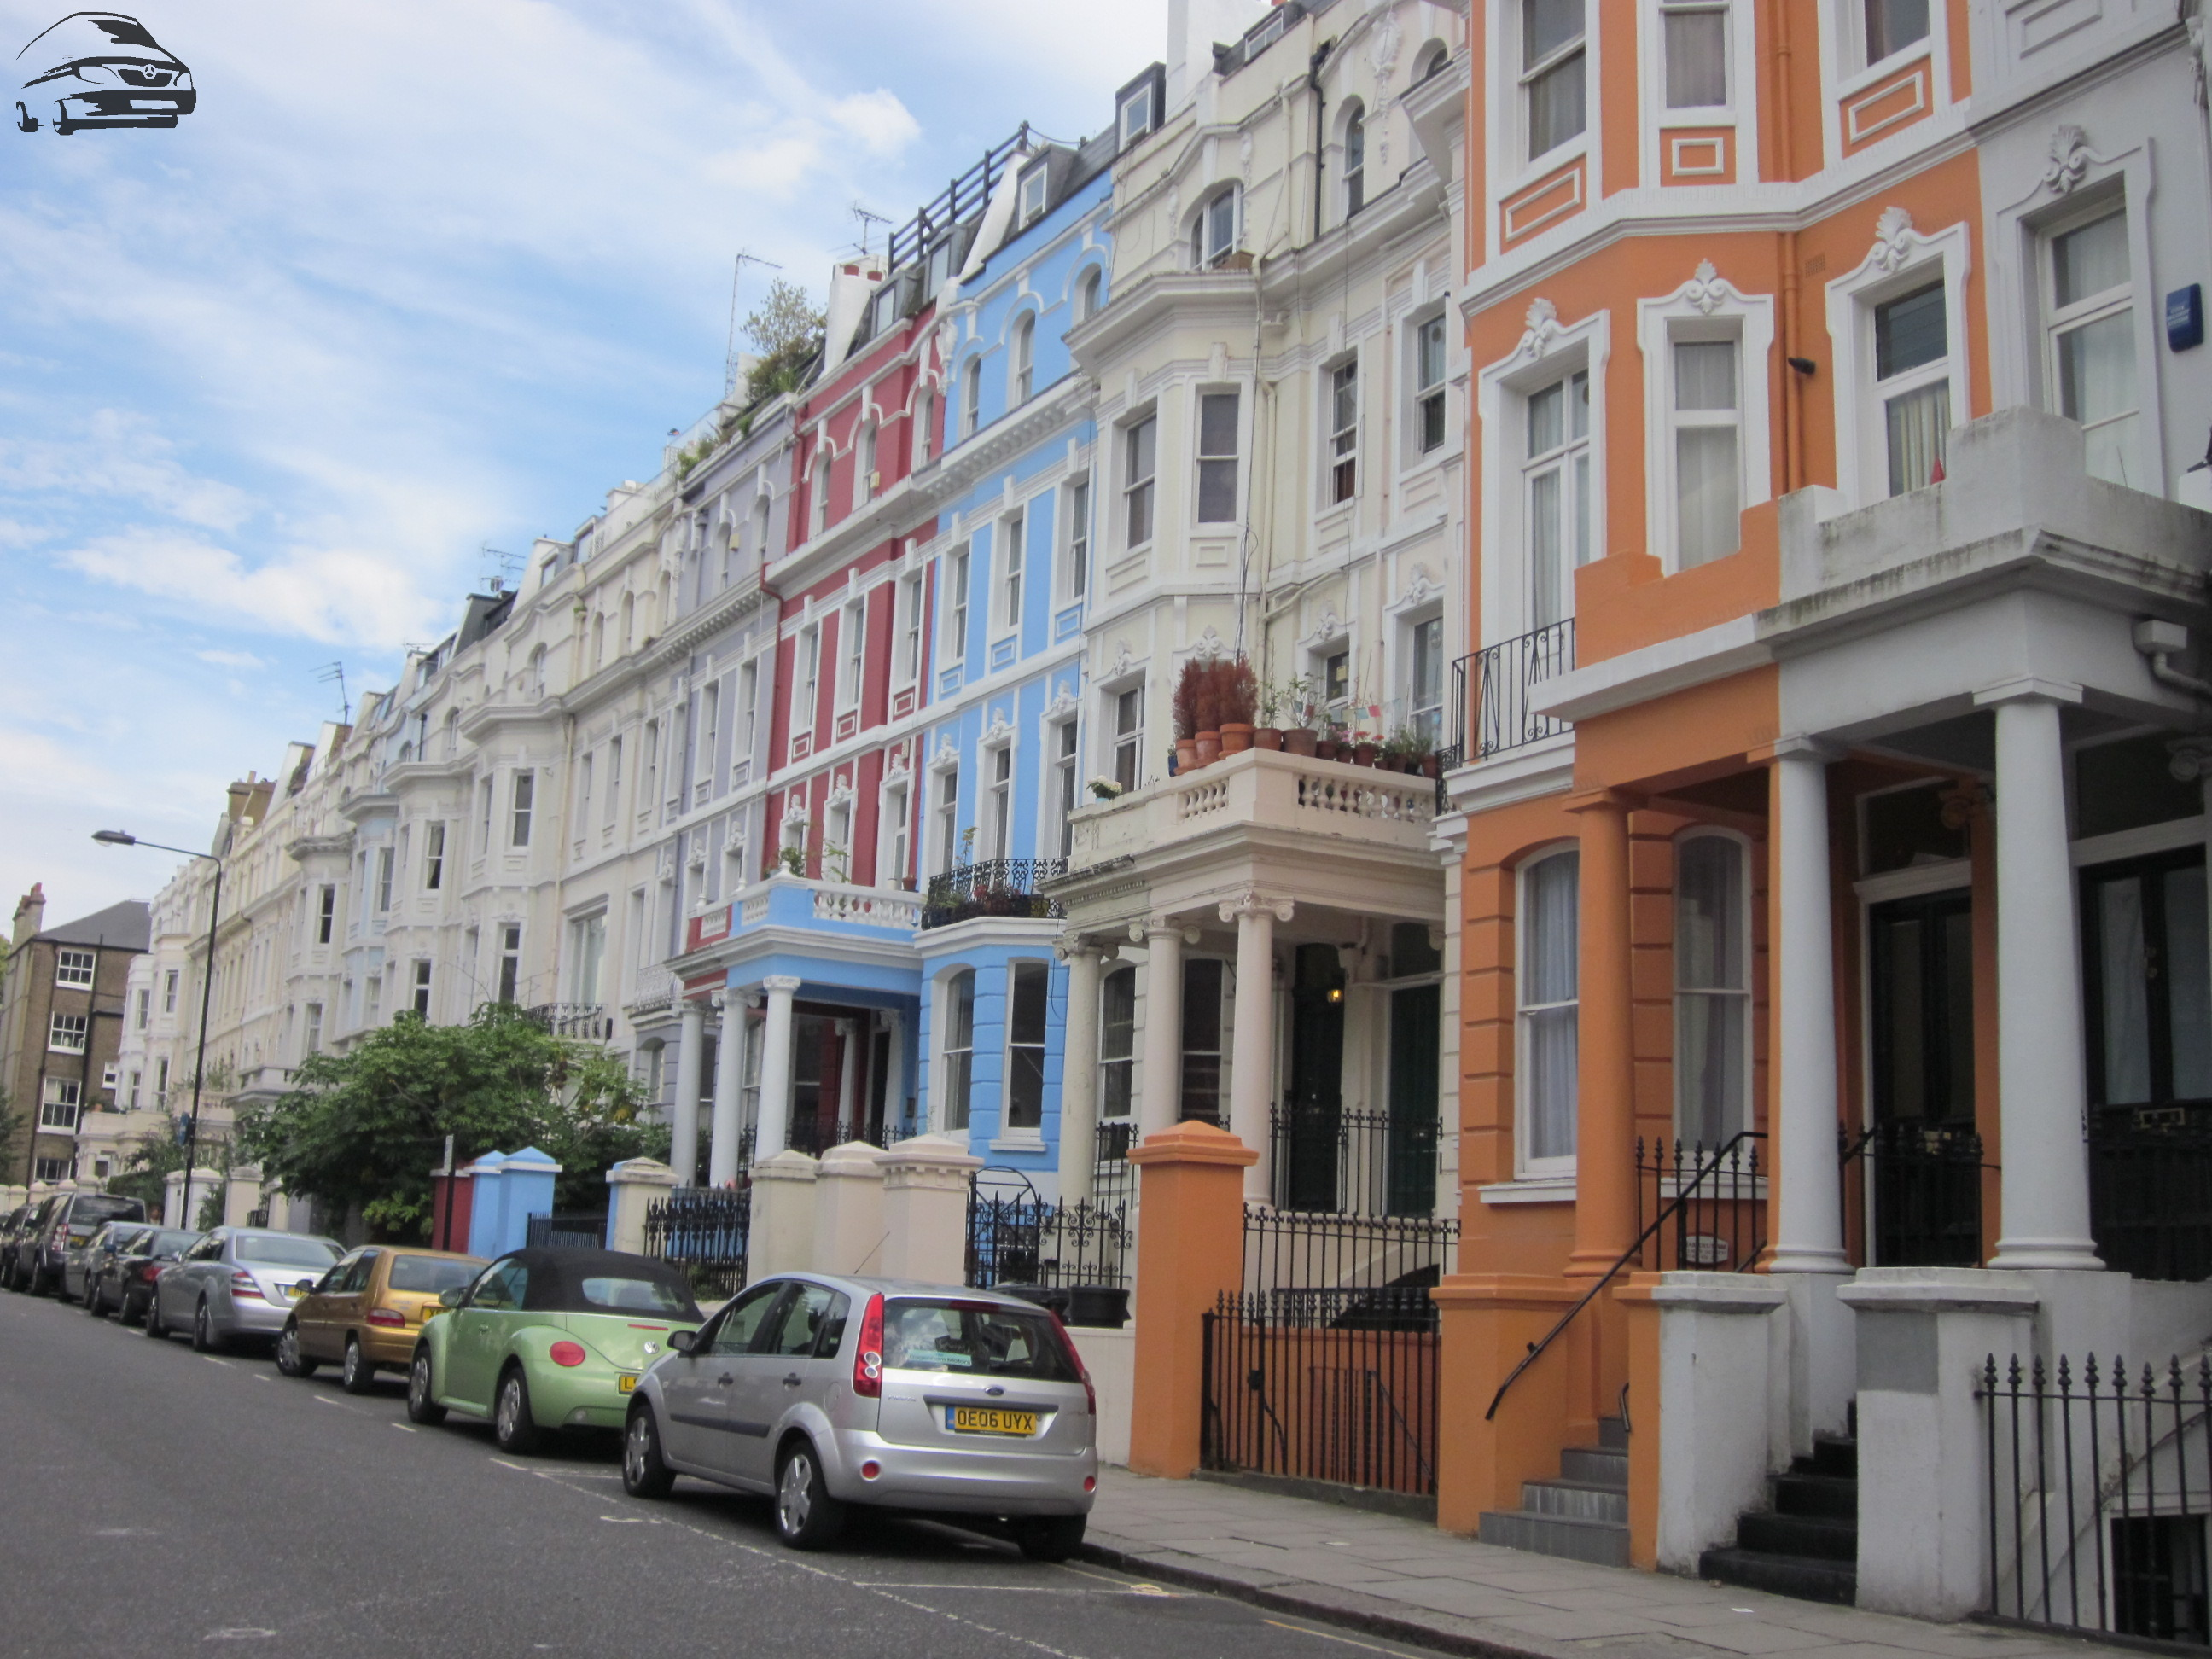 W11 Notting Hill